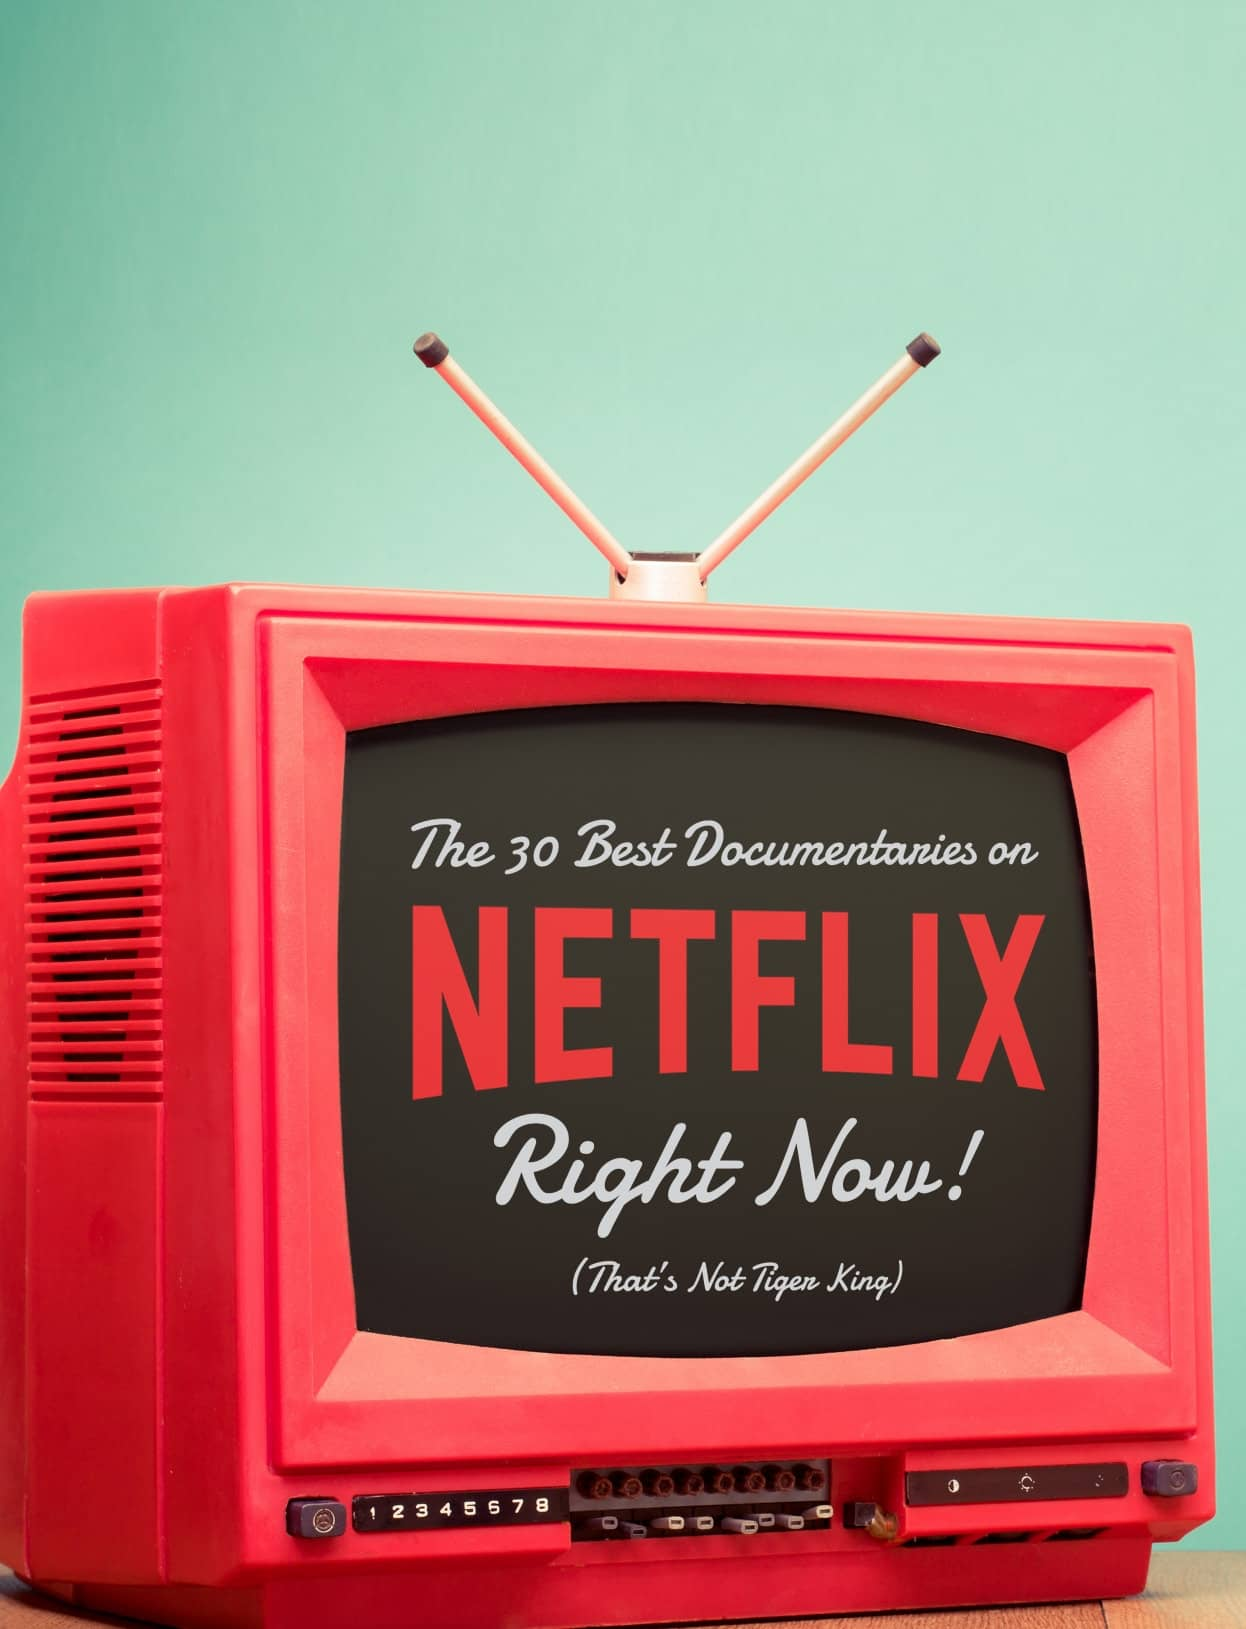 The 30 Best Documentaries on NETFLIX Right Now! (That's Not Tiger King)